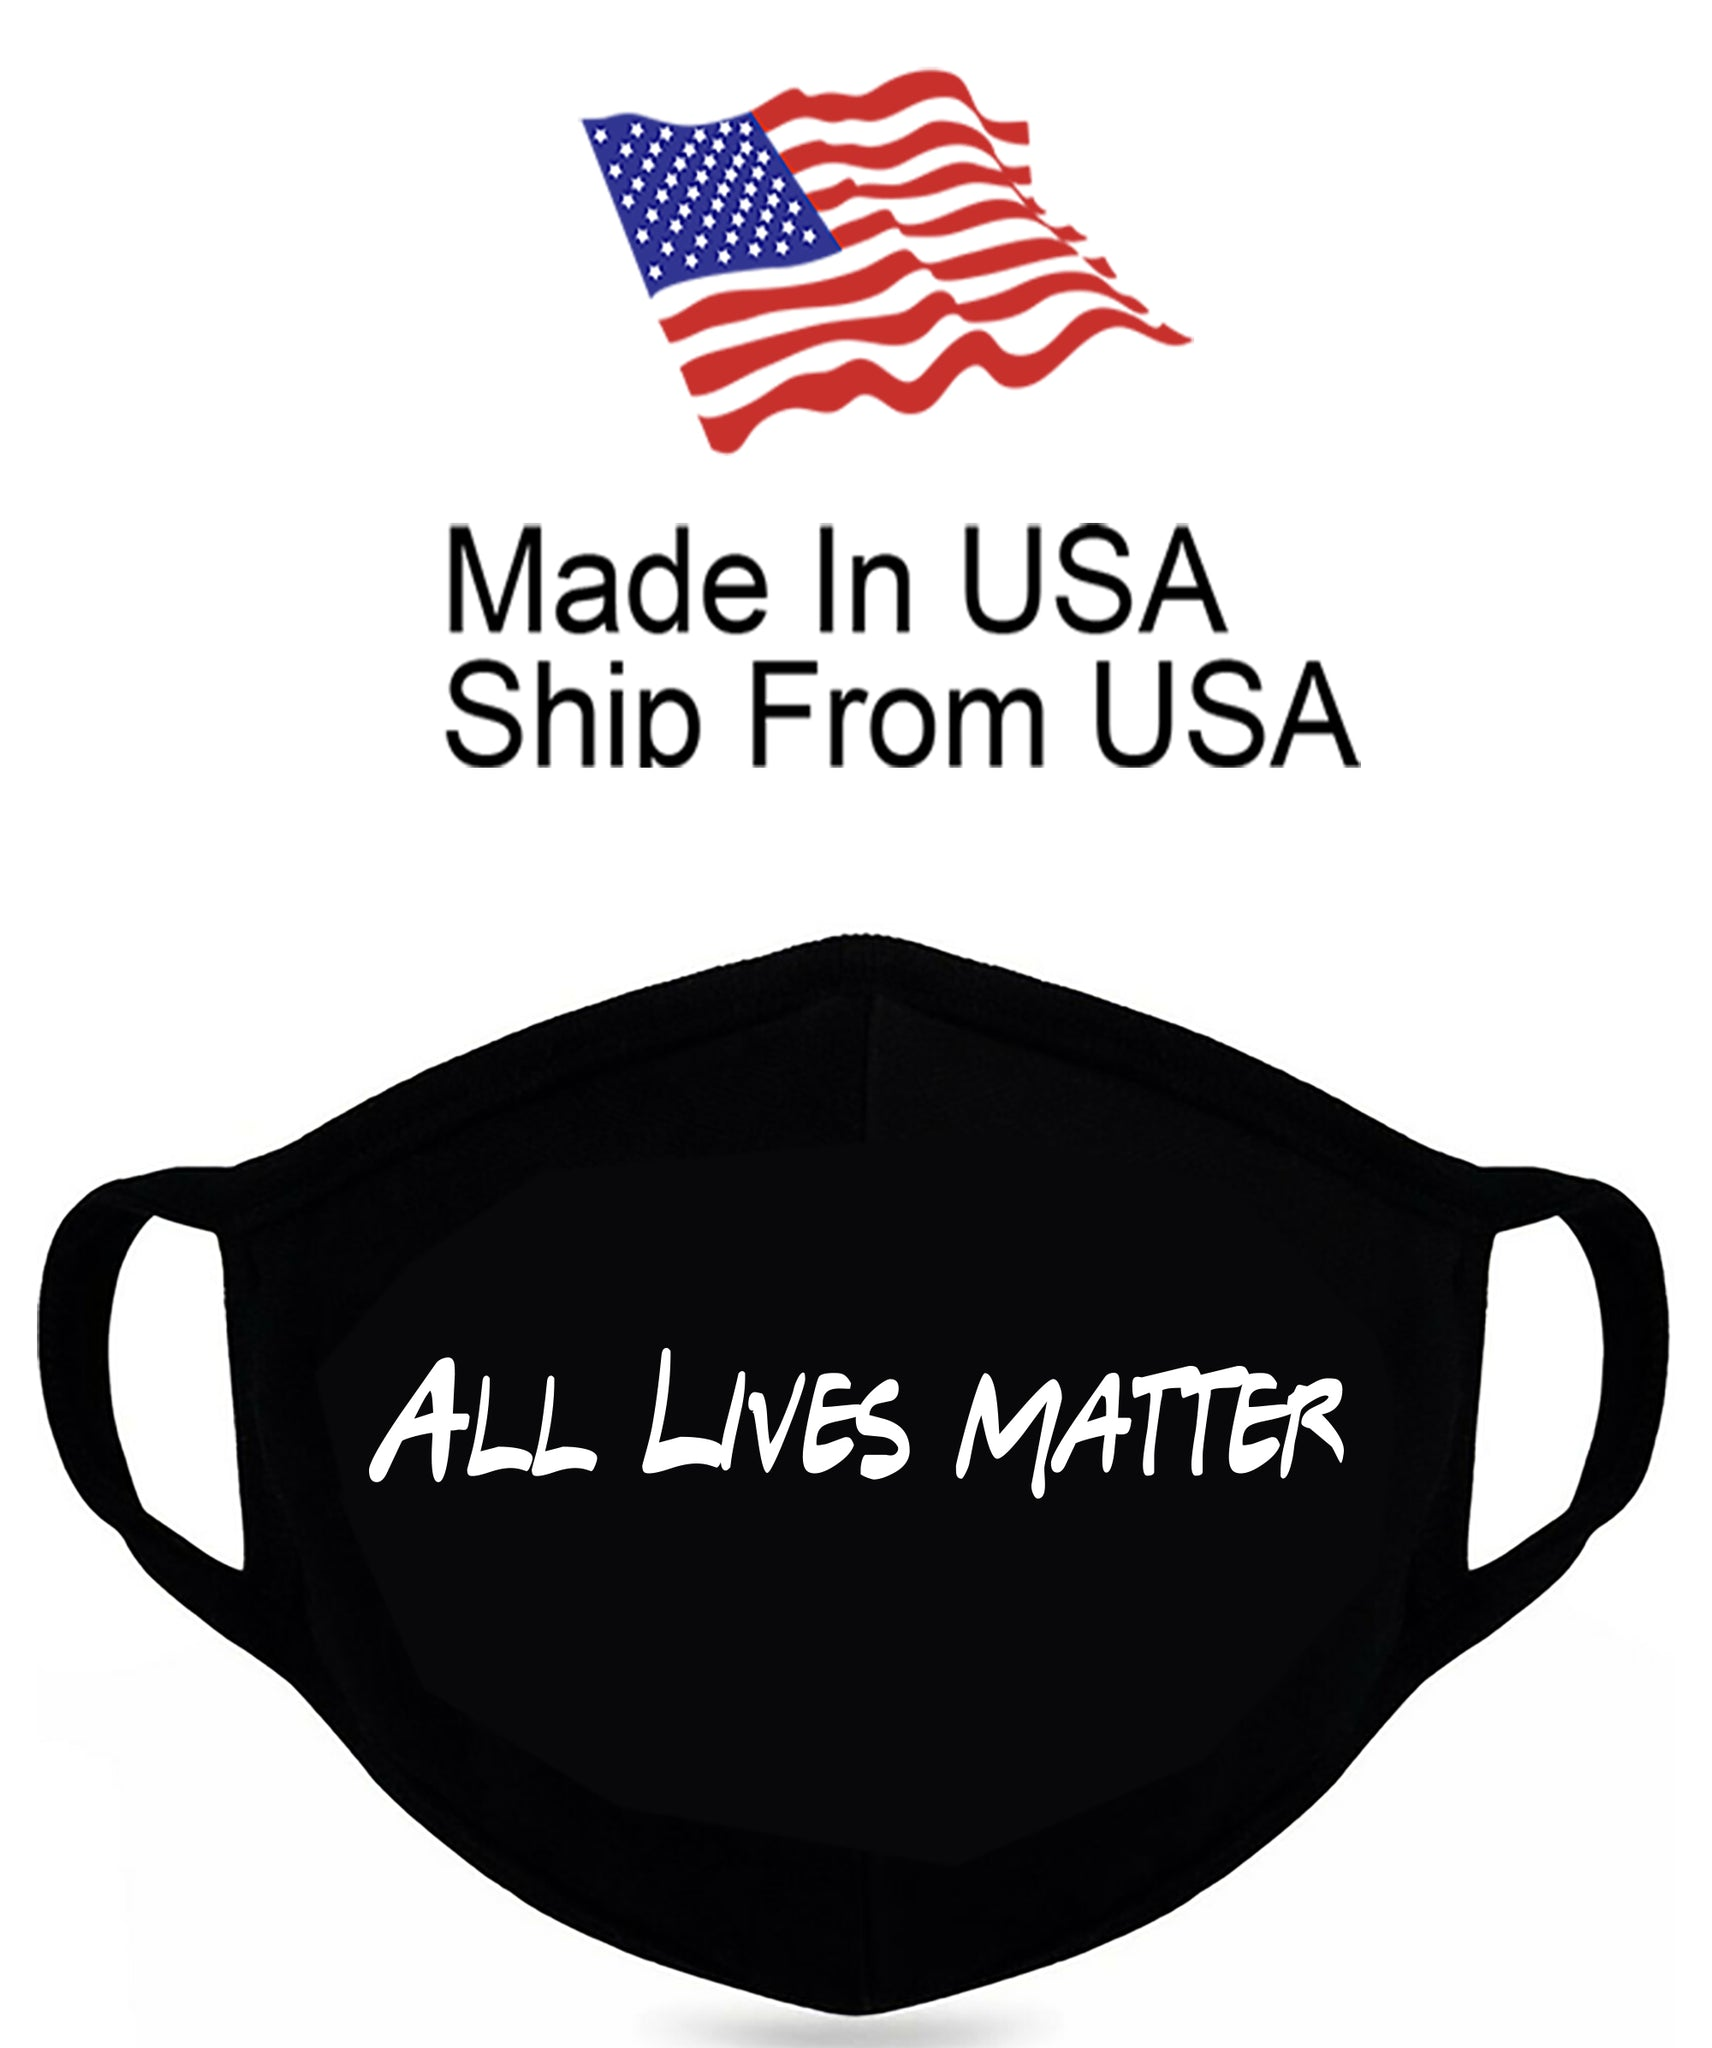 All Lives Matter Cotton Face Mask